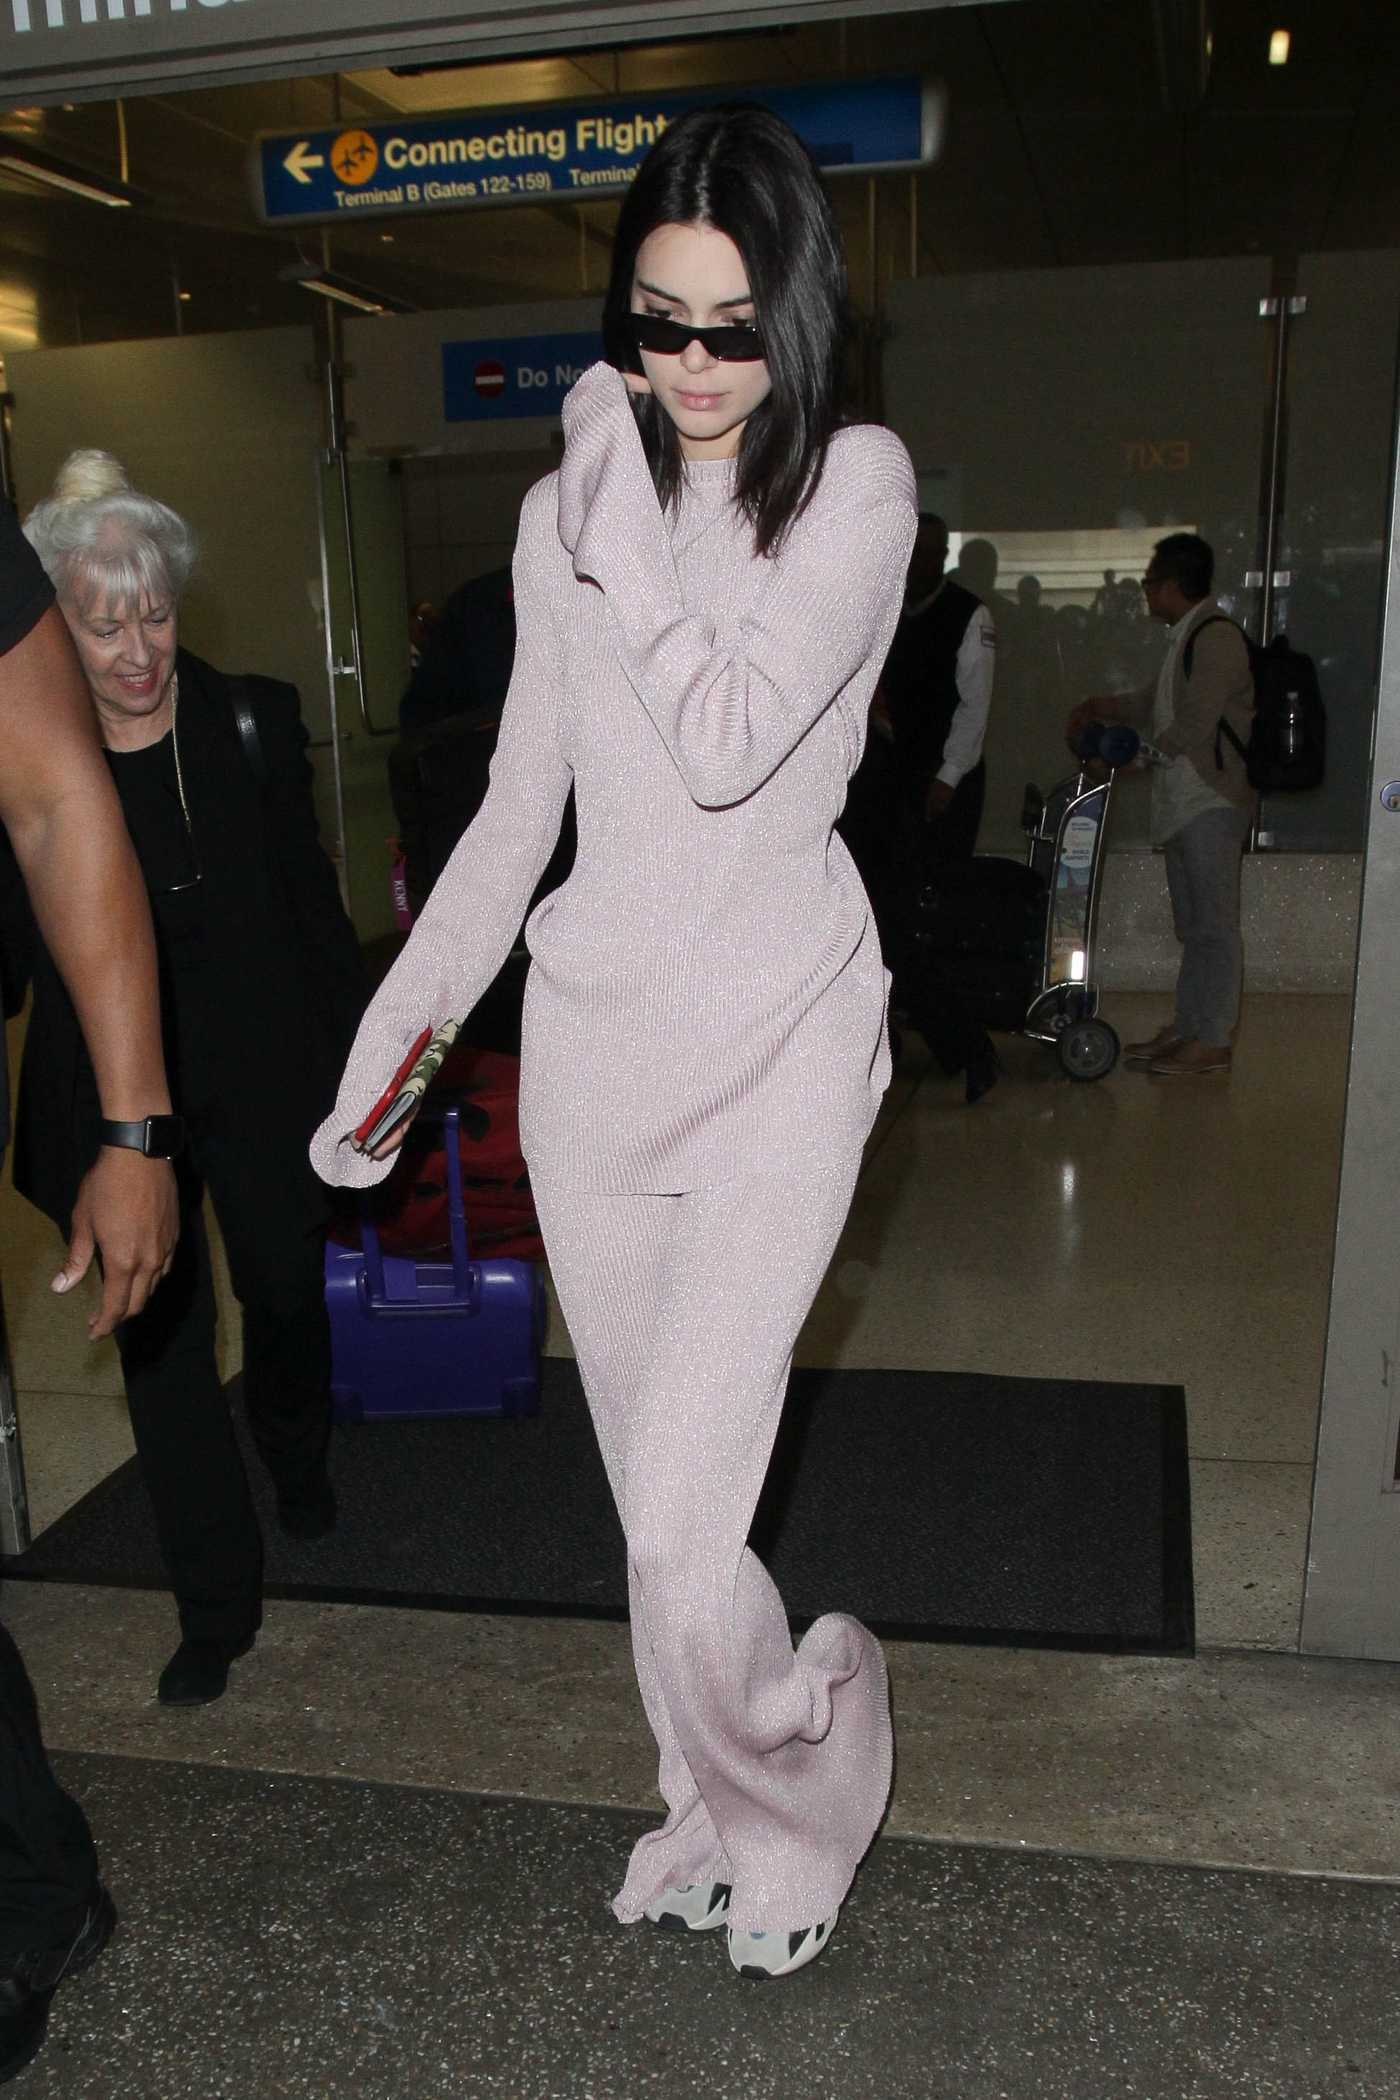 Kendall Jenner in a Purple Suit Arrives at LAX Airport in Los Angeles 09/28/2018